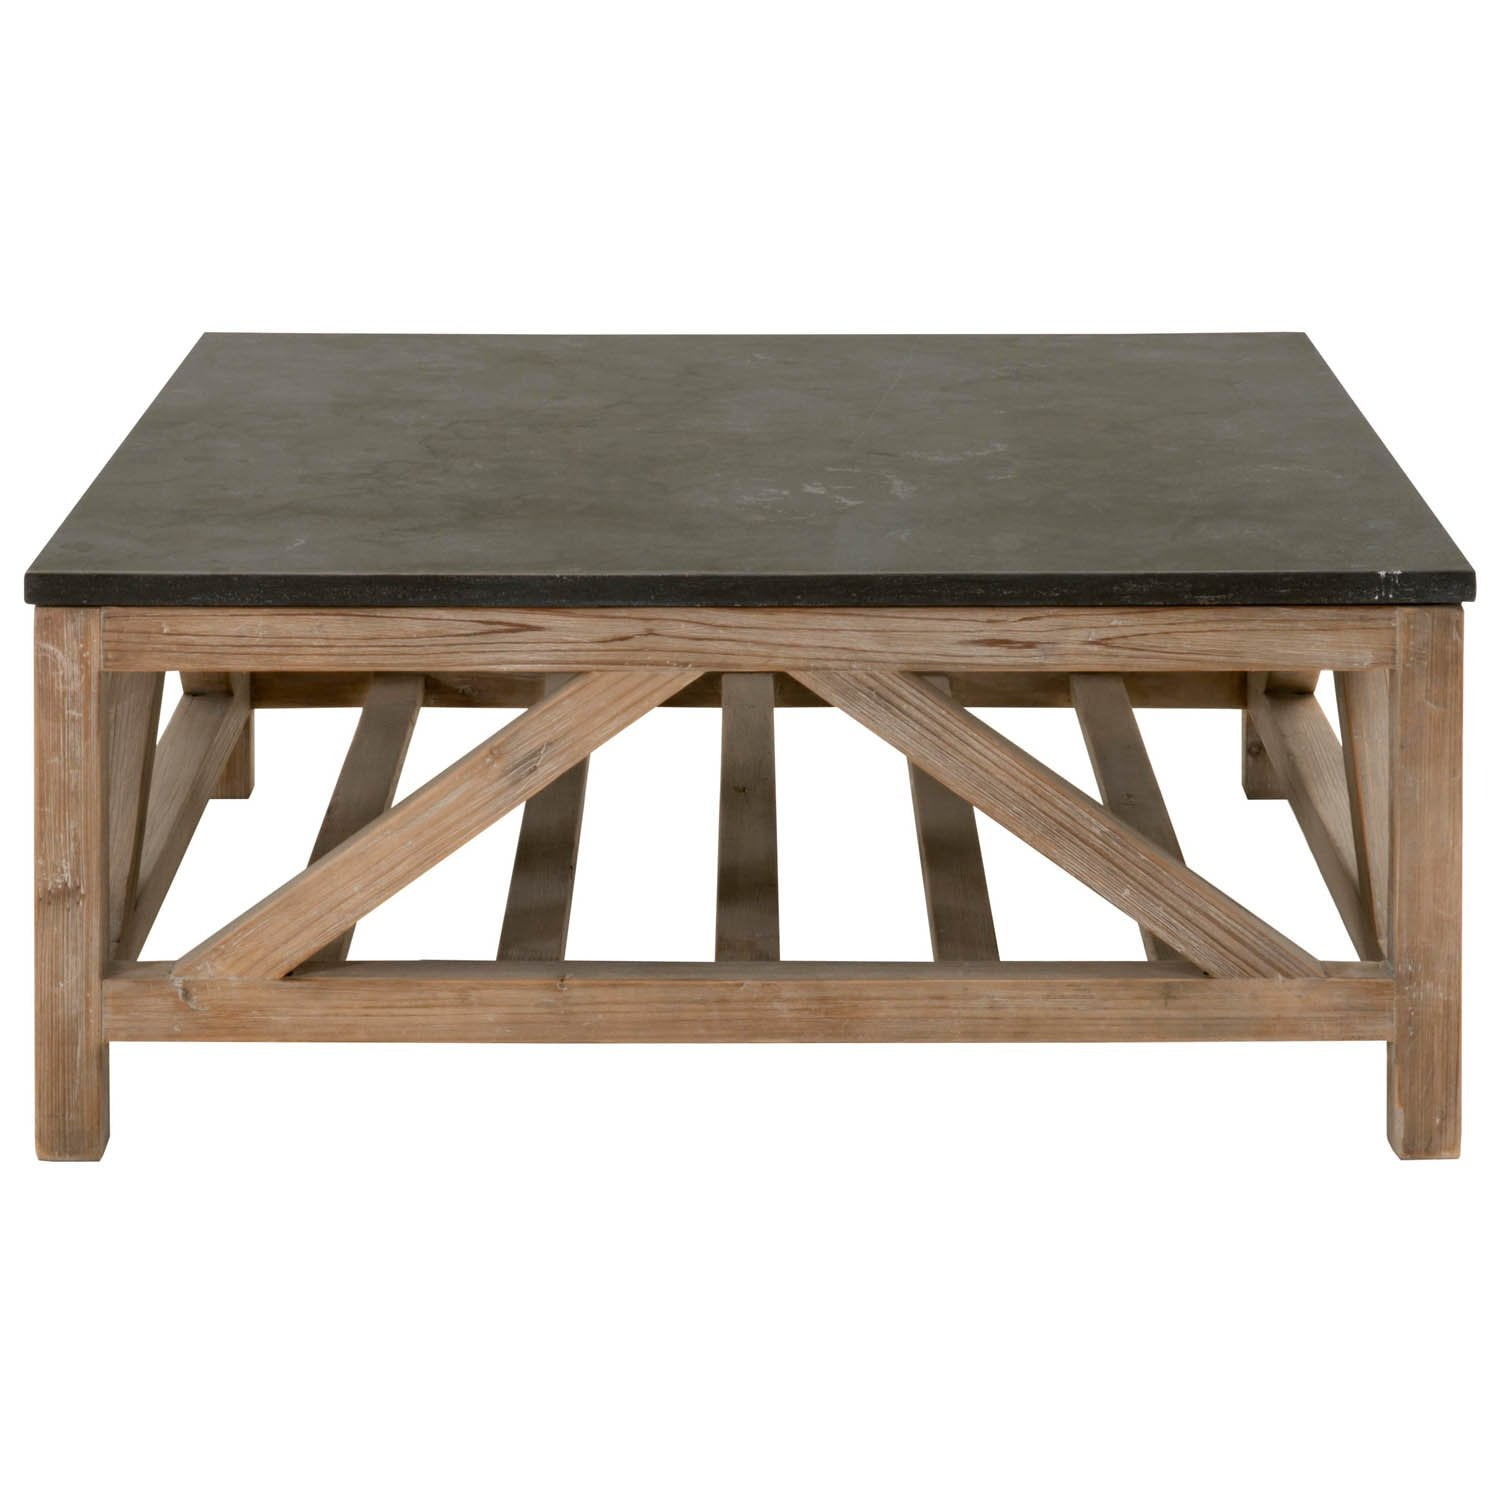 Super Blue Stone Square Coffee Table In Smoke Gray Pine Pabps2019 Chair Design Images Pabps2019Com